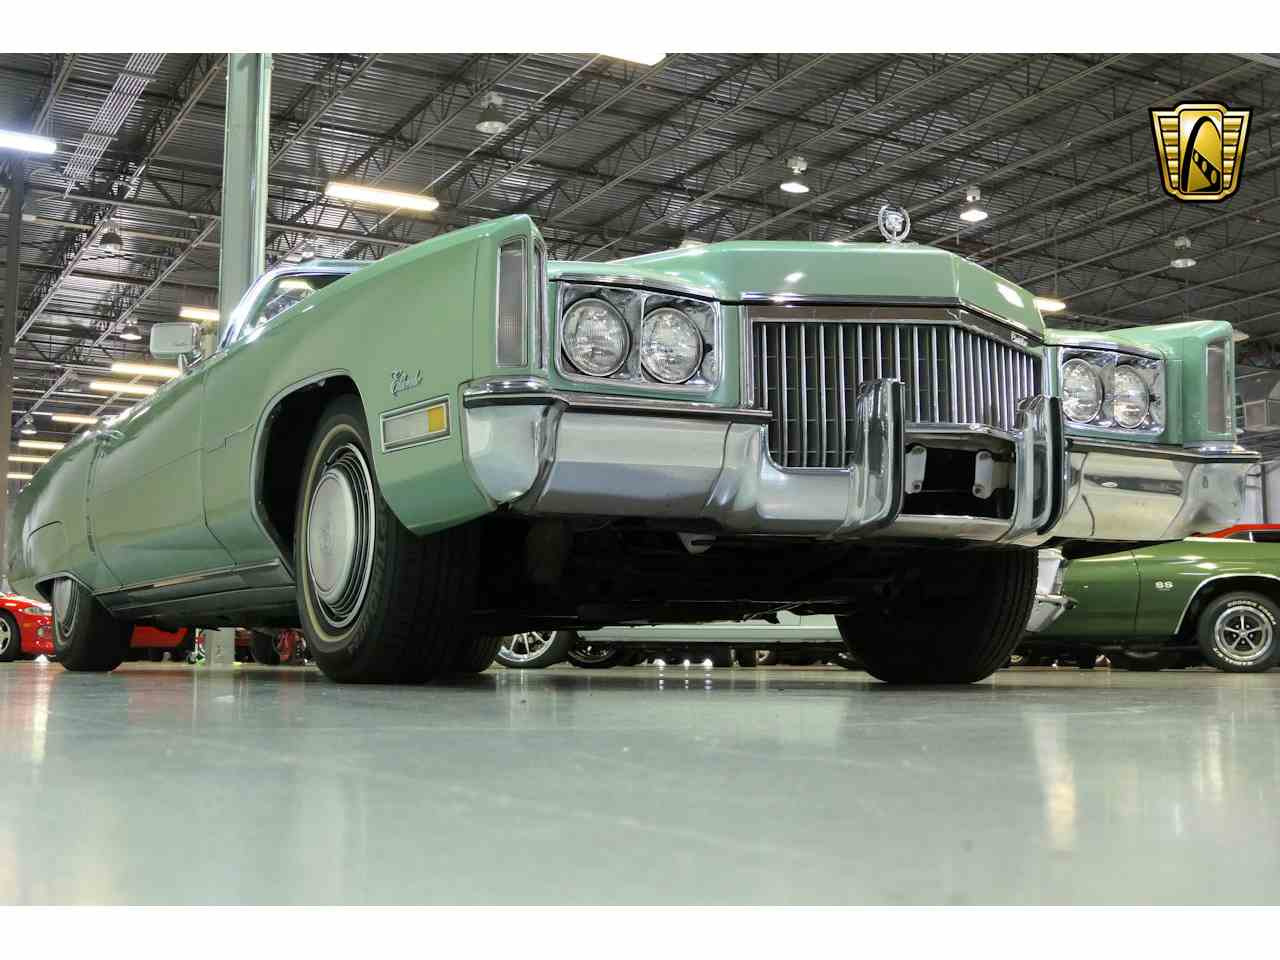 Large Picture of 1972 Cadillac Eldorado located in Lake Mary Florida - $25,995.00 Offered by Gateway Classic Cars - Orlando - NEP5